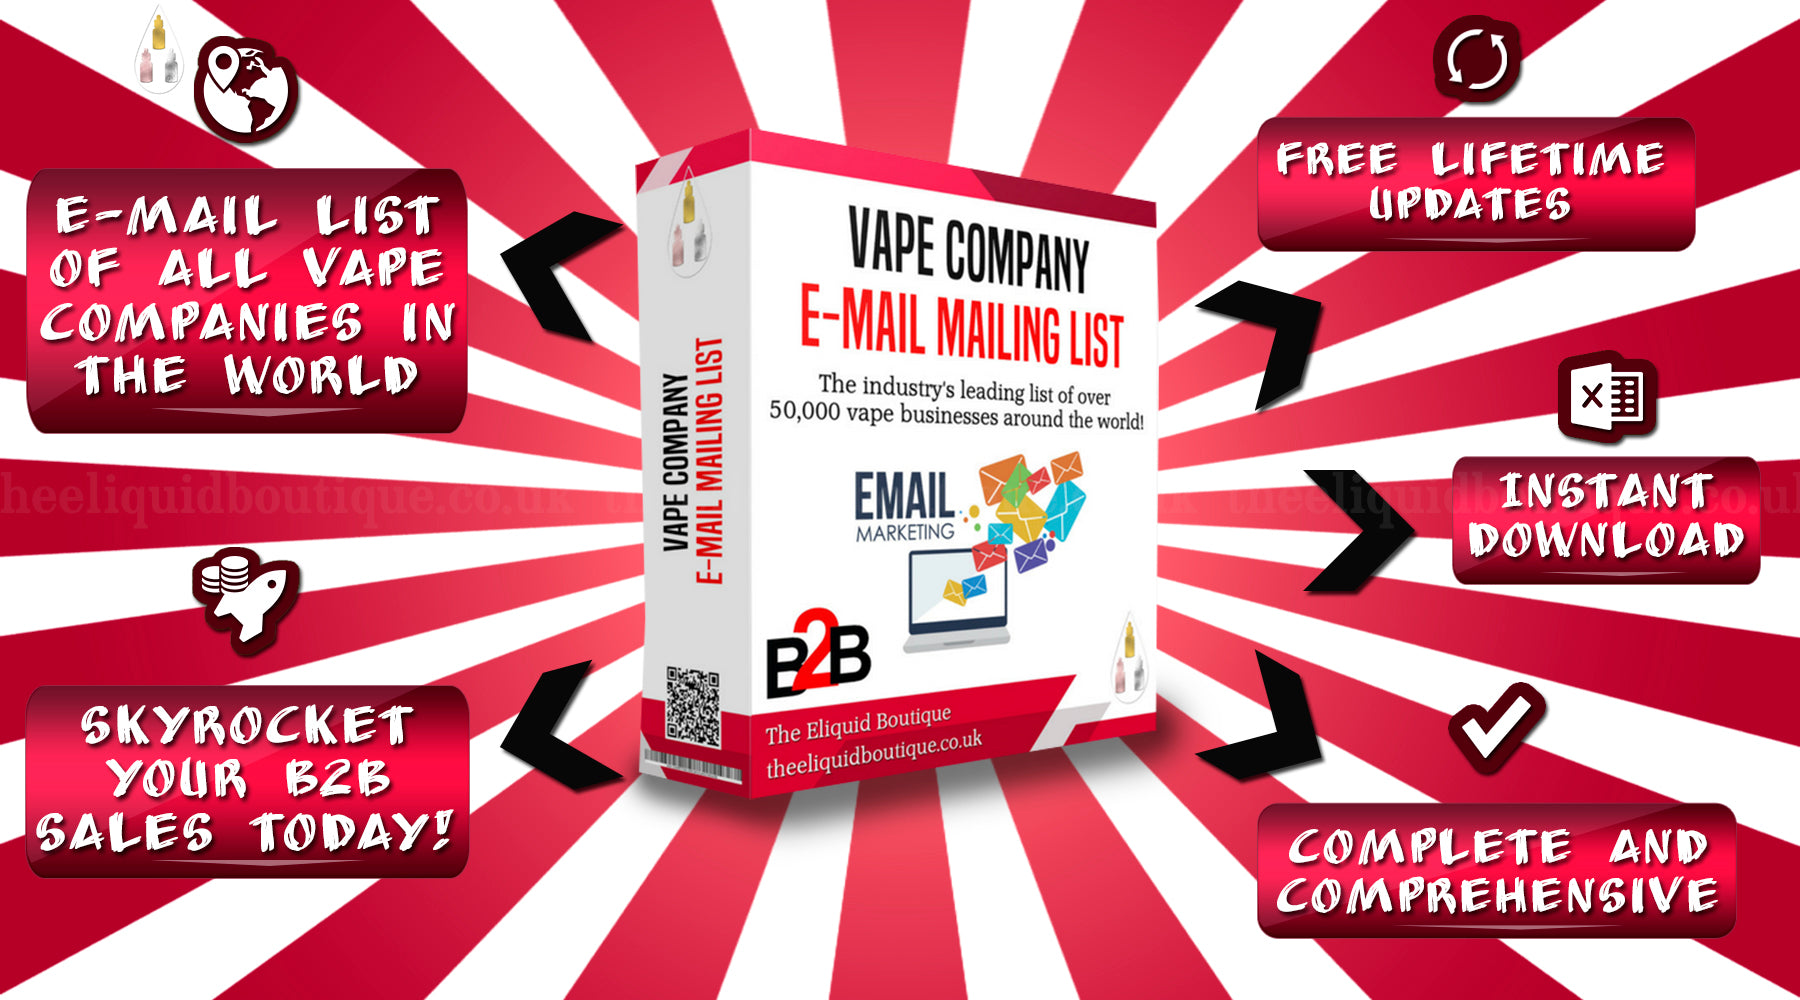 email addresses of all vape companies